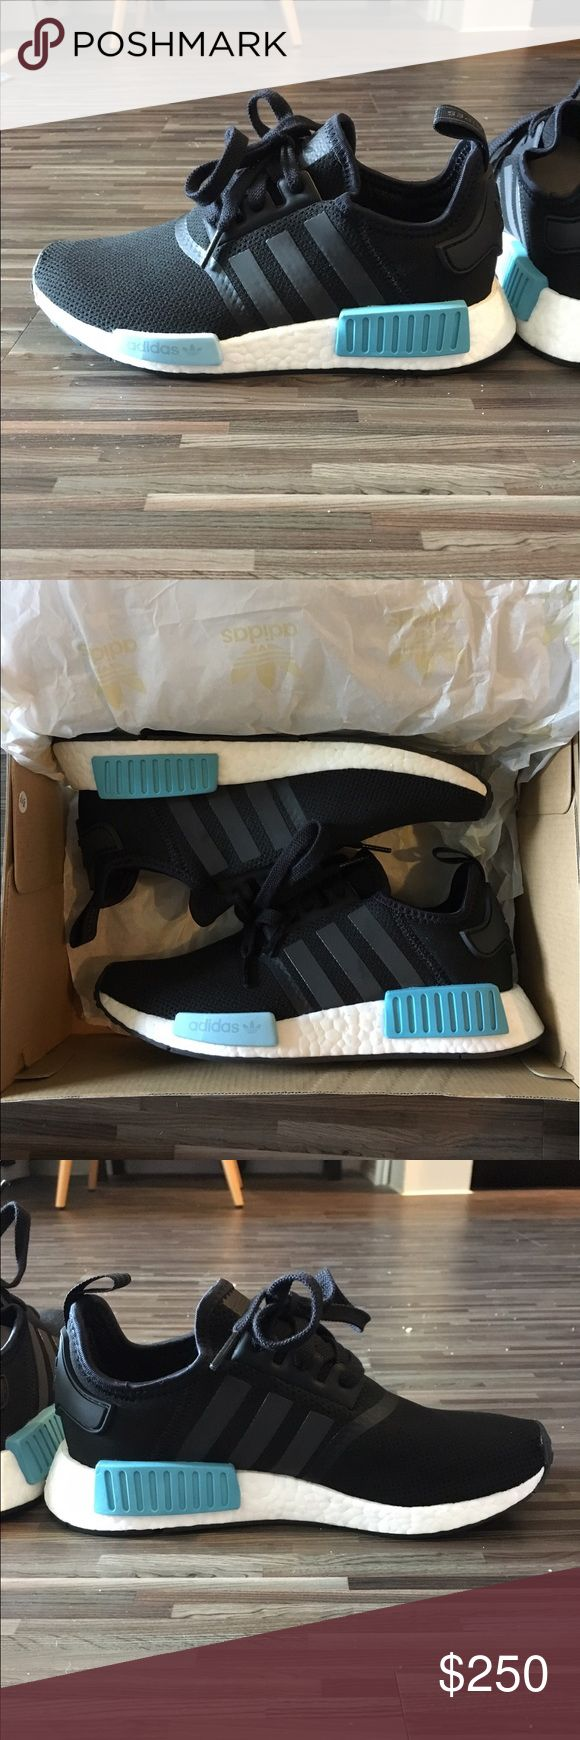 Women's Adidas NMD Icey Blue Sold out in this size!!! These sneakers have never been worn and will be sent in the original box and Finish Line bag with the original receipt (pictured). All NMDs I sell are authentic. I collect Adidas NMDs and sell the colors I decide not to keep, which is why I only sell size 7.5 (beware of sellers selling multiple sizes). They run a half size big, so know your size! Feel free to comment with questions and please, serious offers only; these are very difficult…